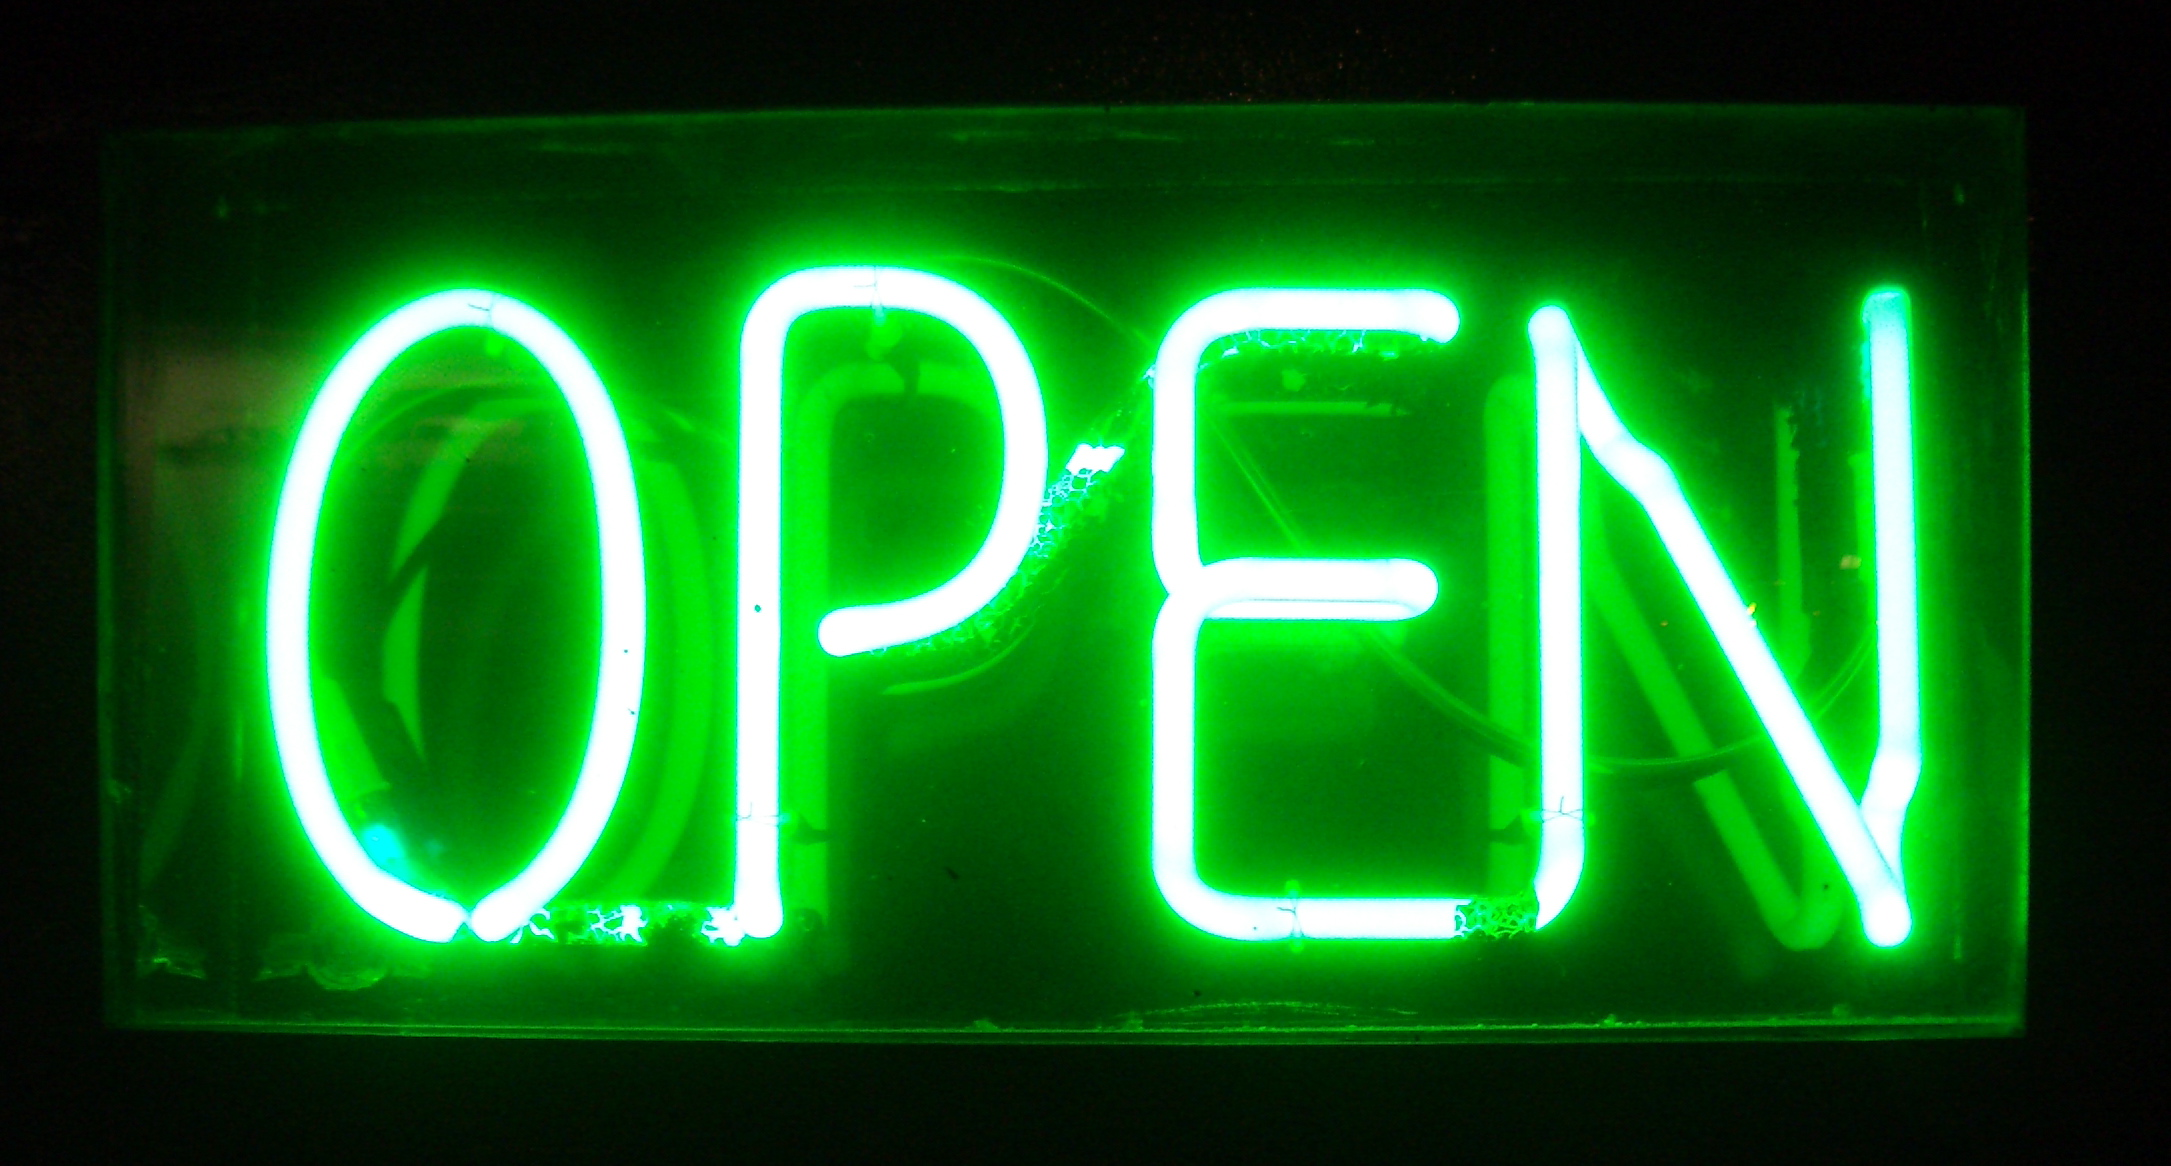 File:Neon Open green.jpg - Wikimedia Commons